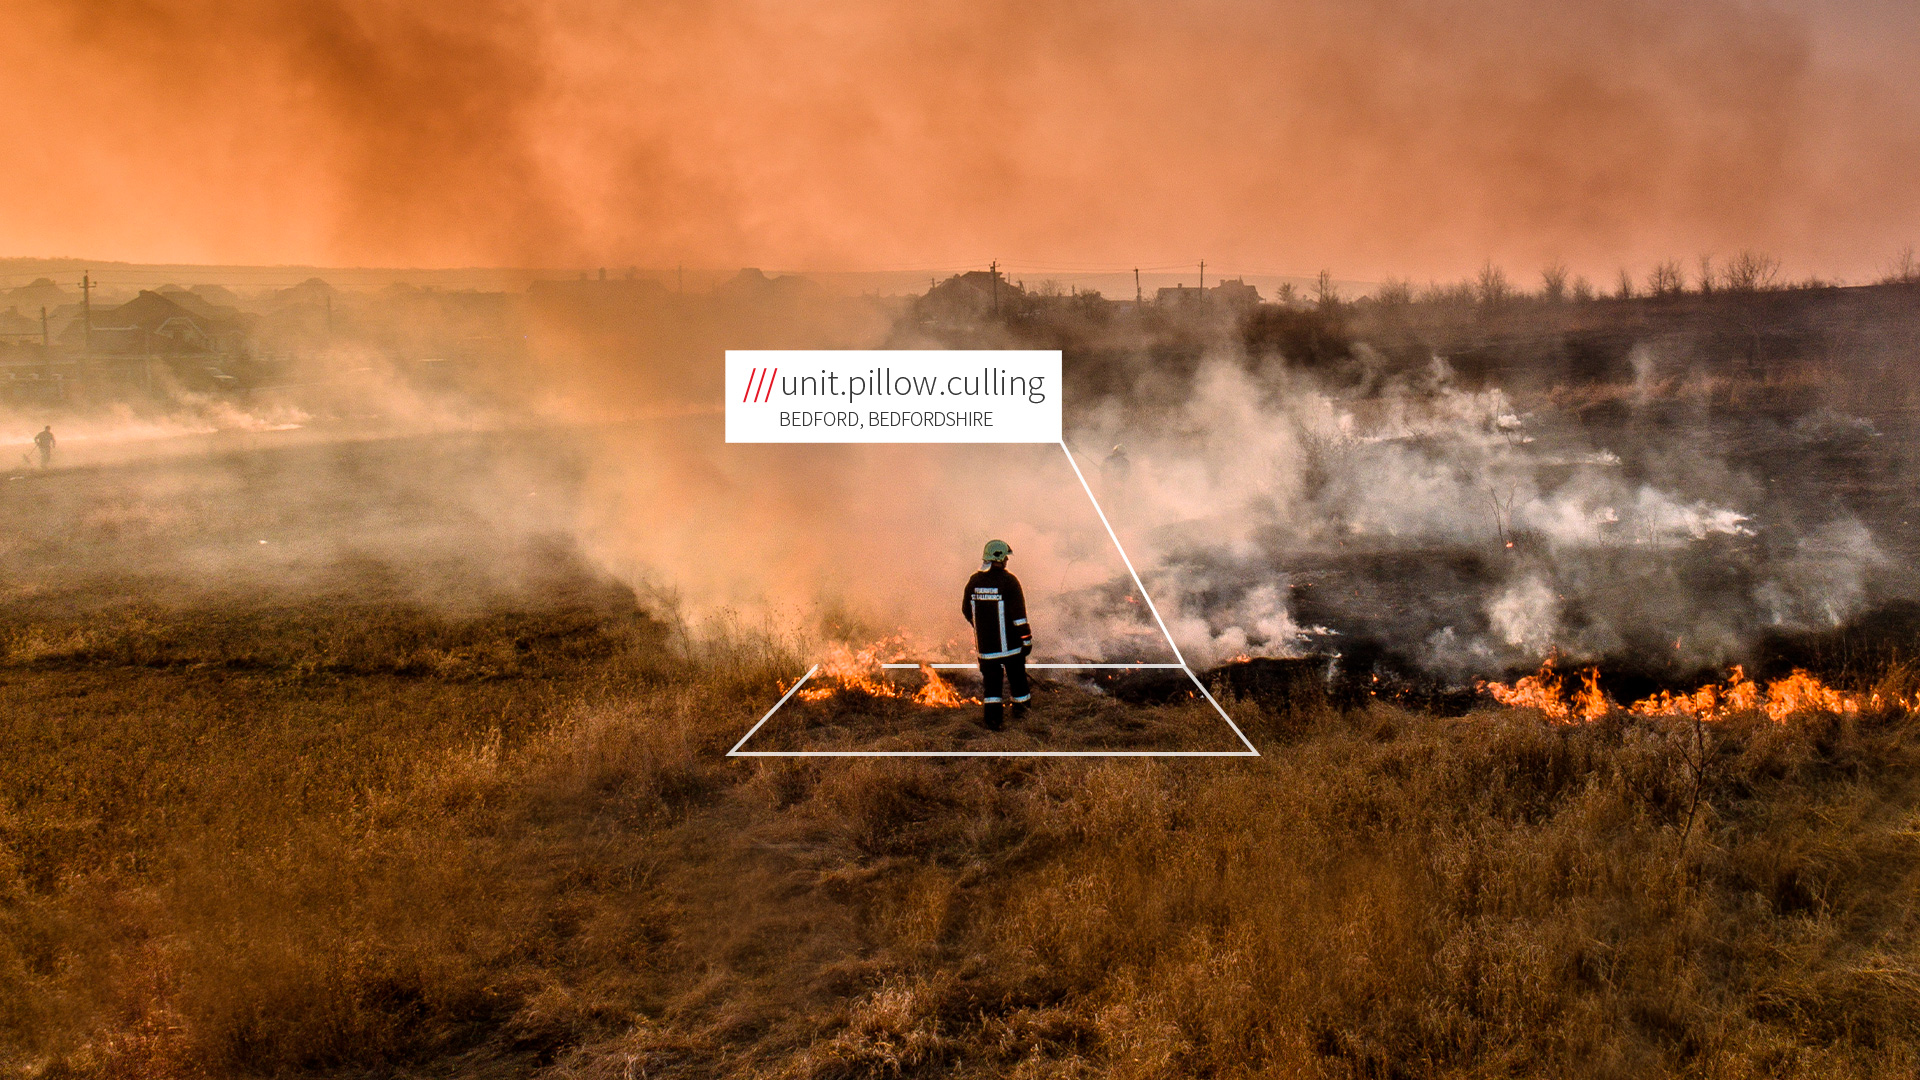 A fire burning through fields with a firefighter in 3 word location unit.pillow.culling